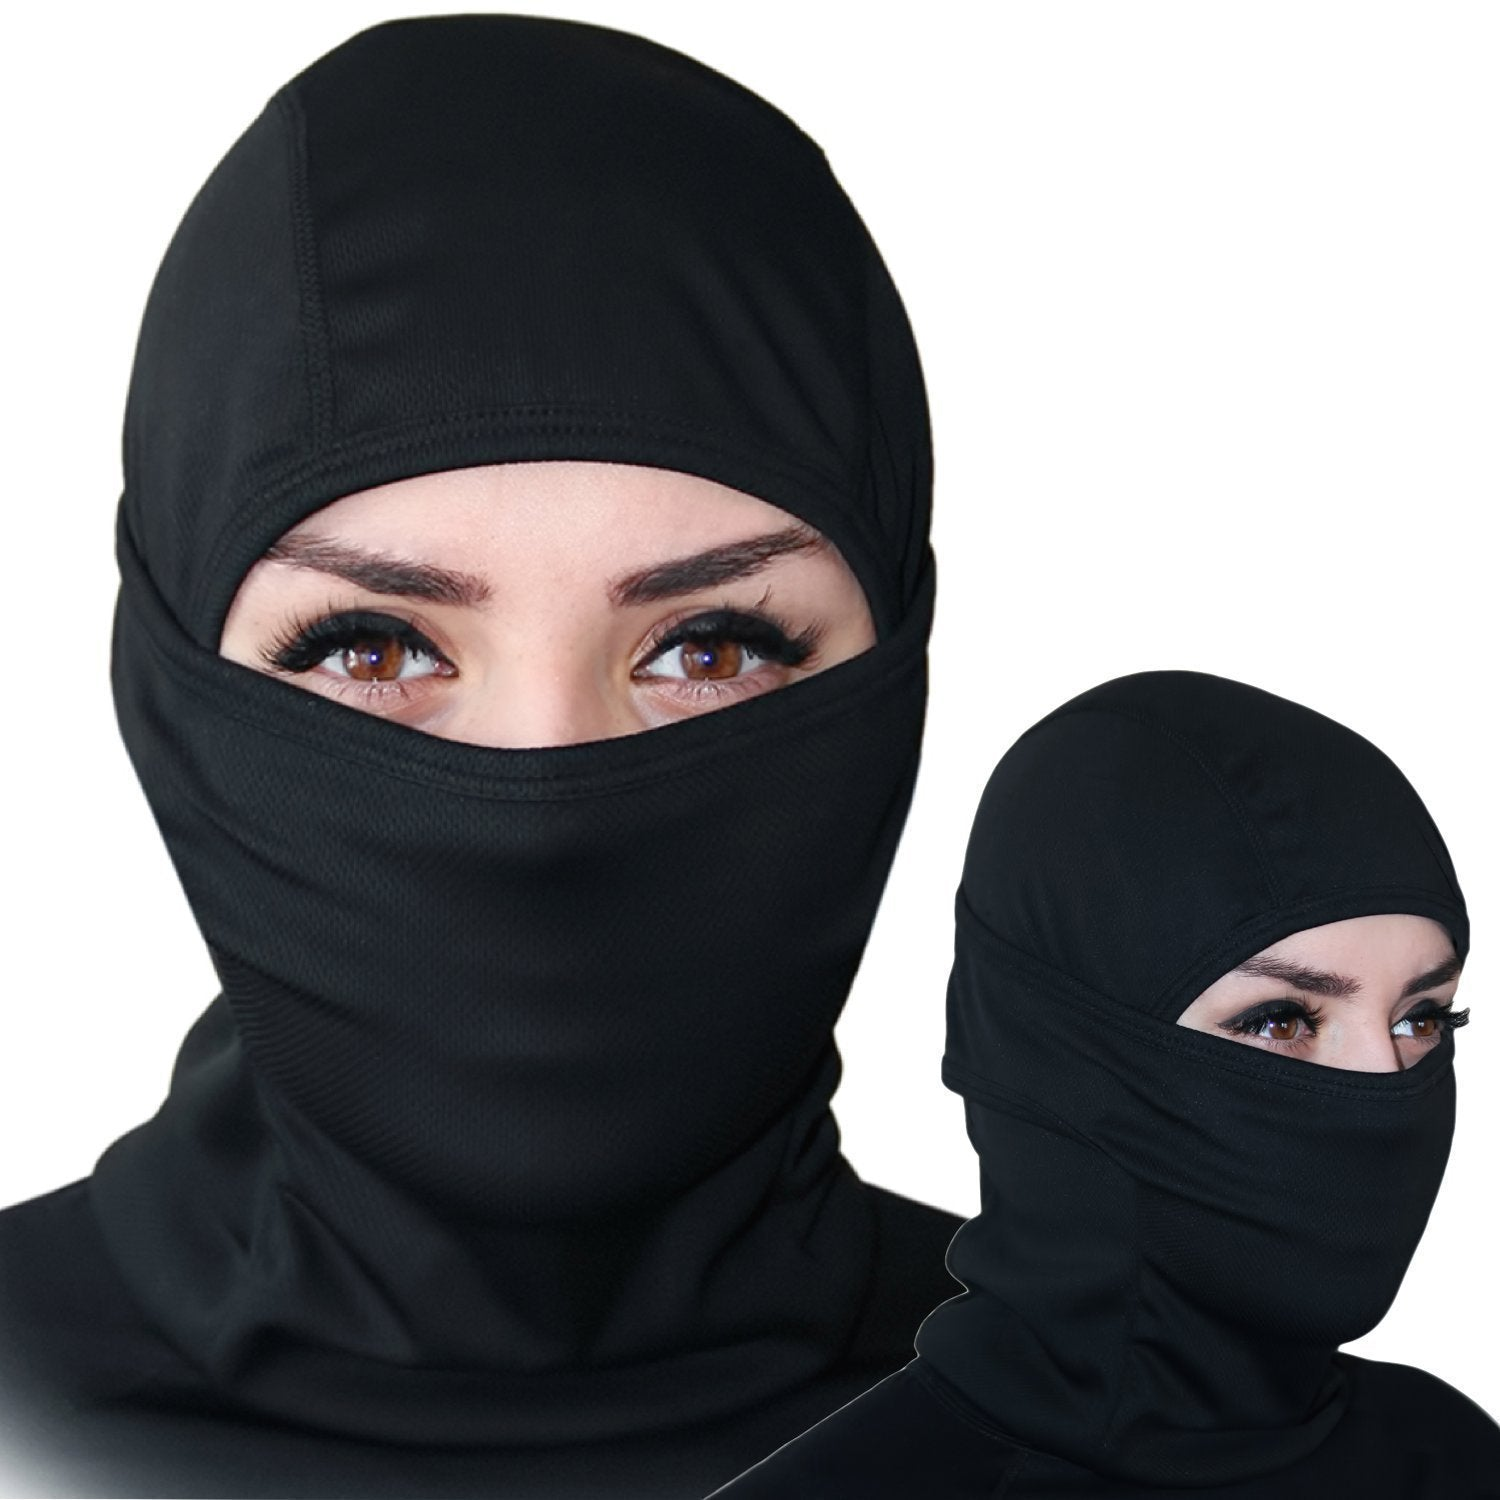 Balaclava - Windproof Ski Mask - Cold Weather Face Mask Motorcycle Neck  Warmer or Tactical Balaclava Hood - Ultimate Thermal Retention in Outdoors  Super ... 950d33d1384